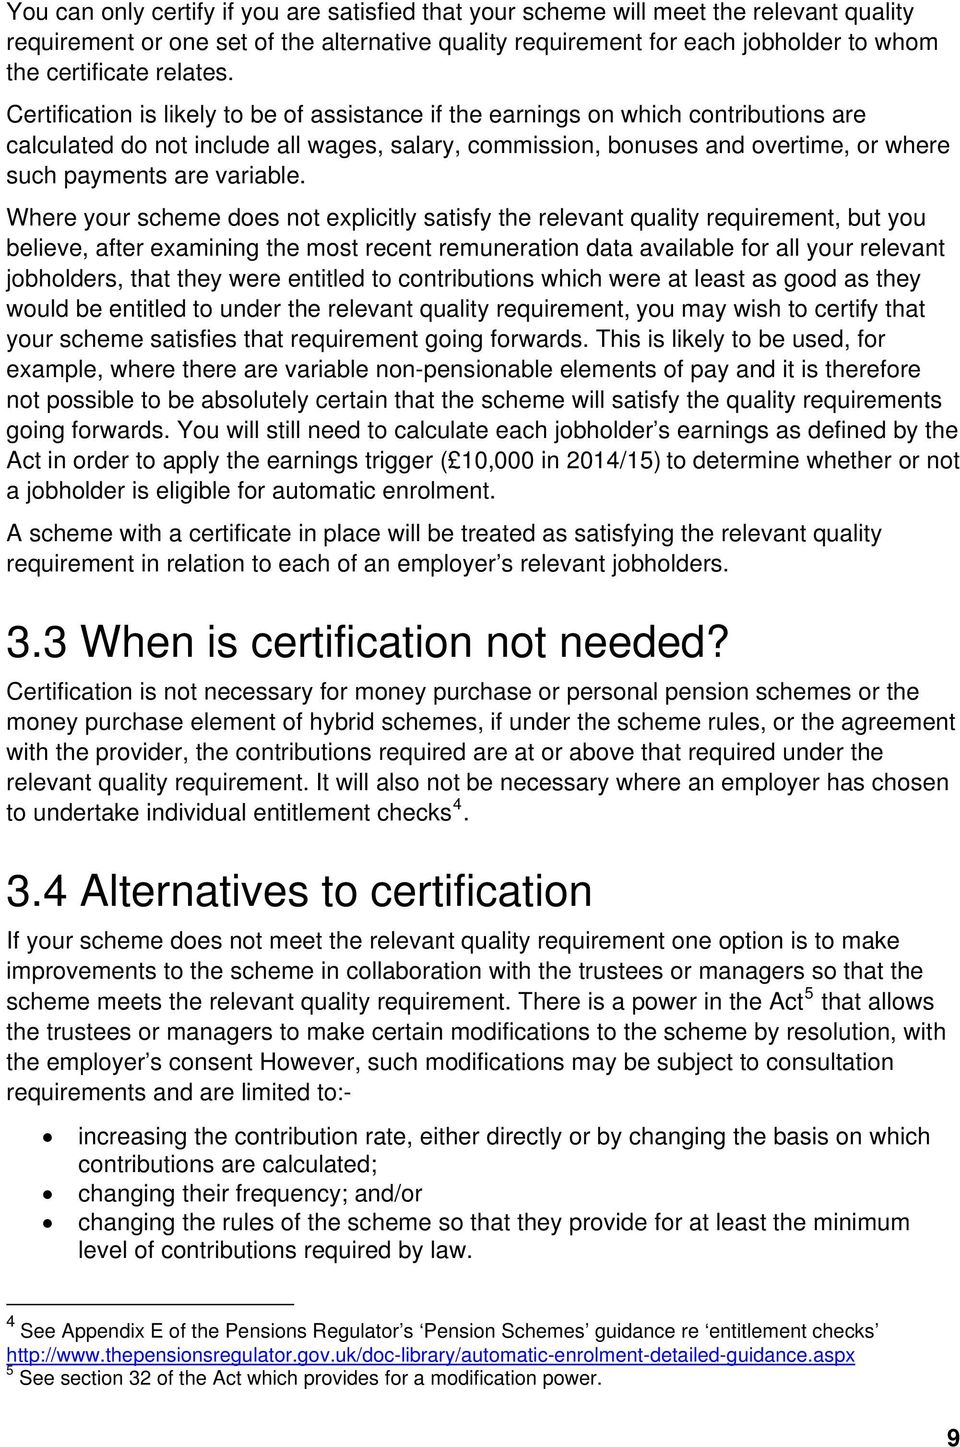 Certification is likely to be of assistance if the earnings on which contributions are calculated do not include all wages, salary, commission, bonuses and overtime, or where such payments are